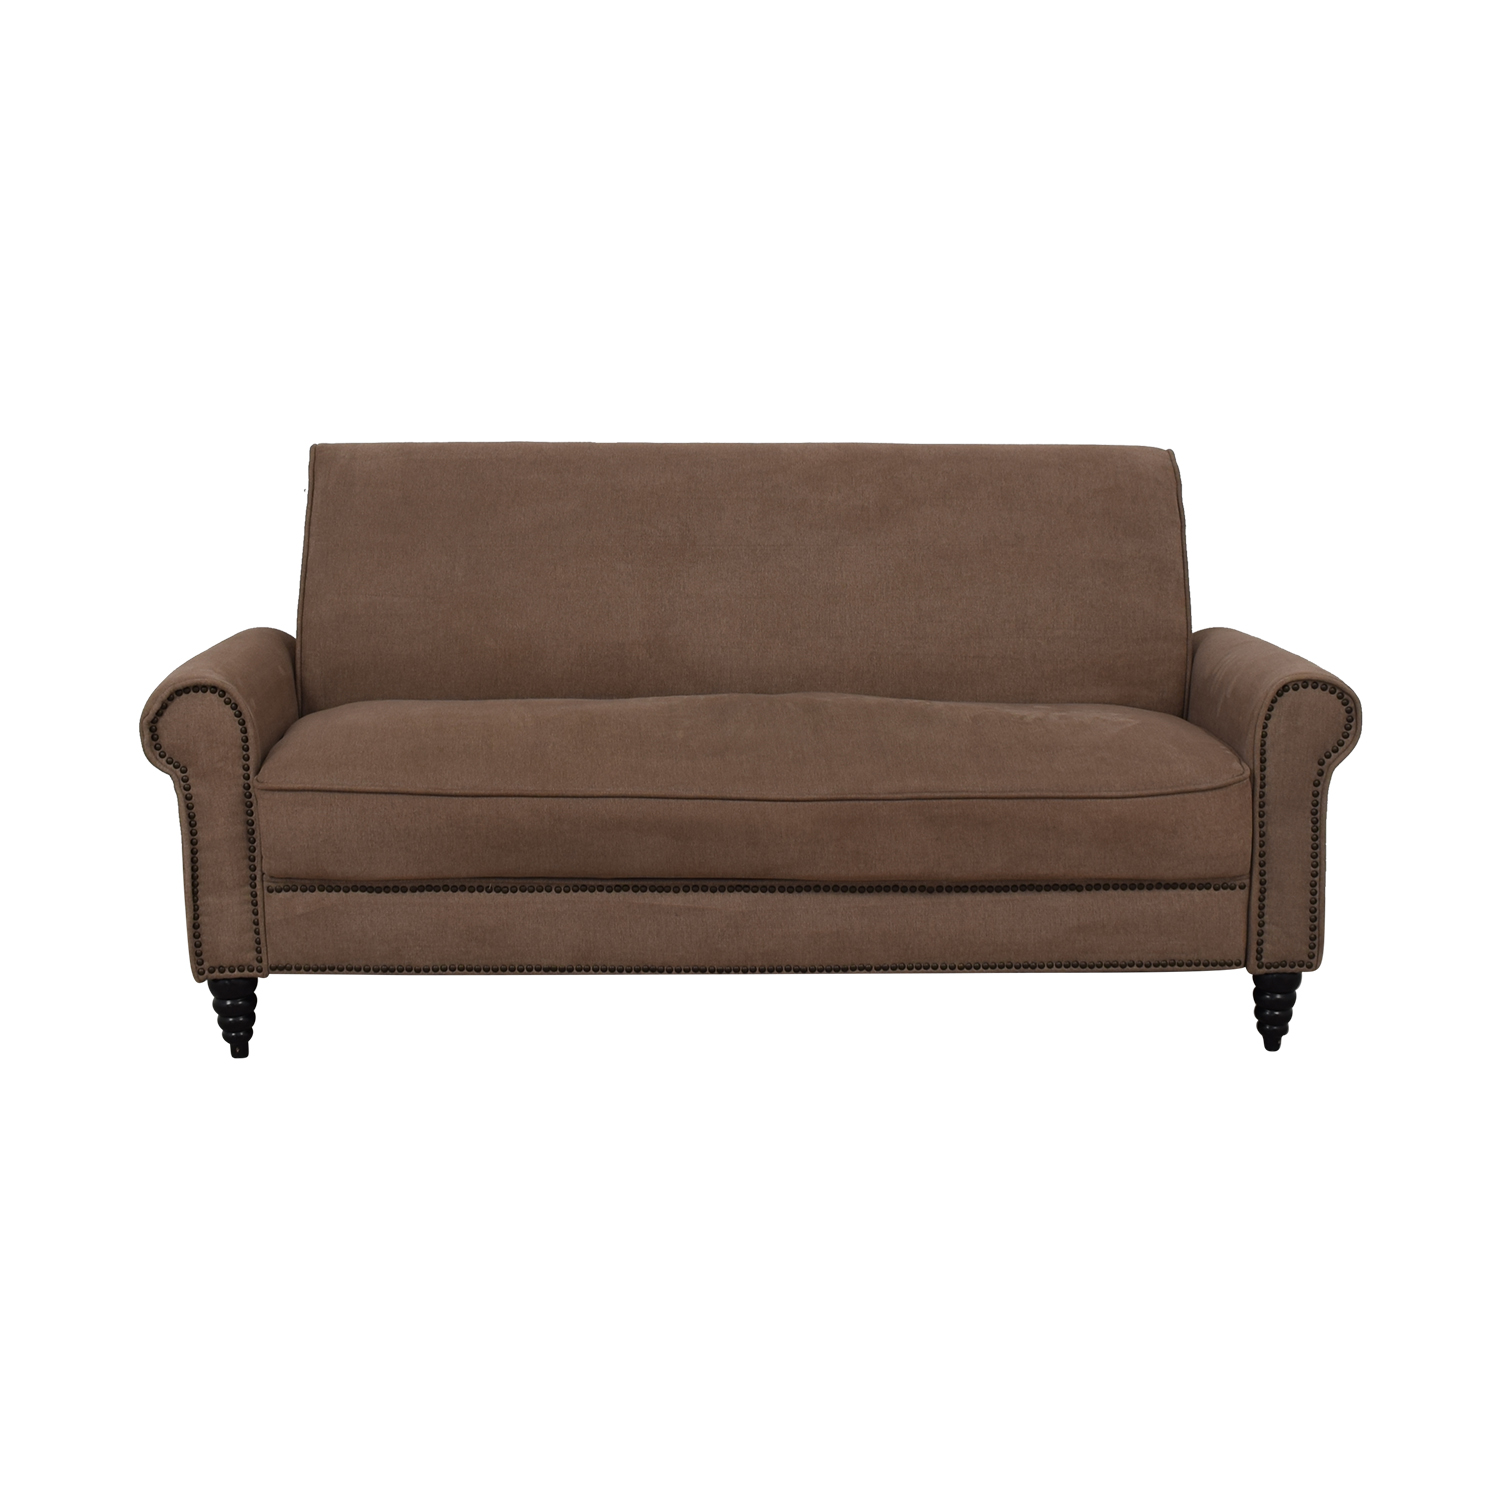 Overstock Overstock  Cream Nailhead Single Cushion Sofa